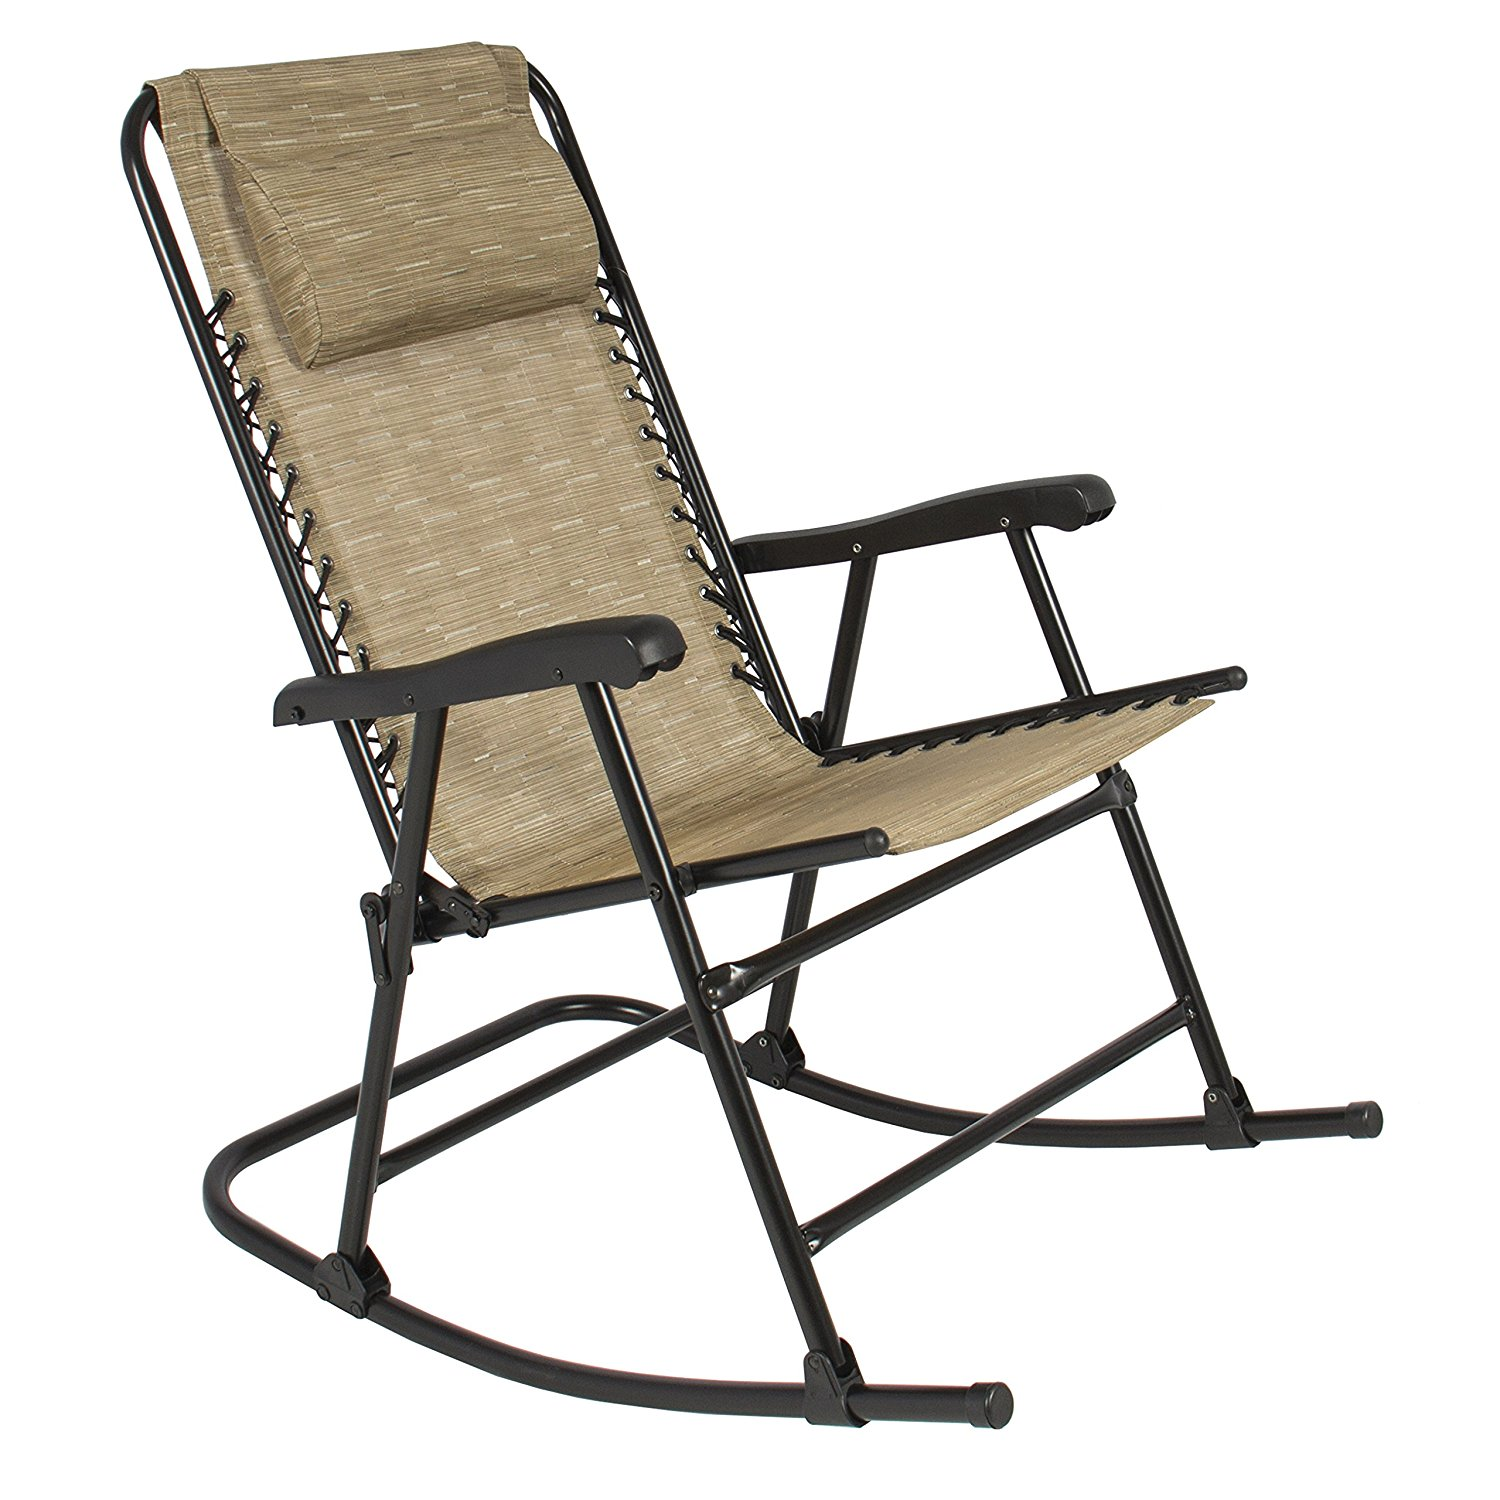 folding garden chairs amazon.com: best choice products folding rocking chair foldable rocker outdoor  patio furniture UDFJBBT